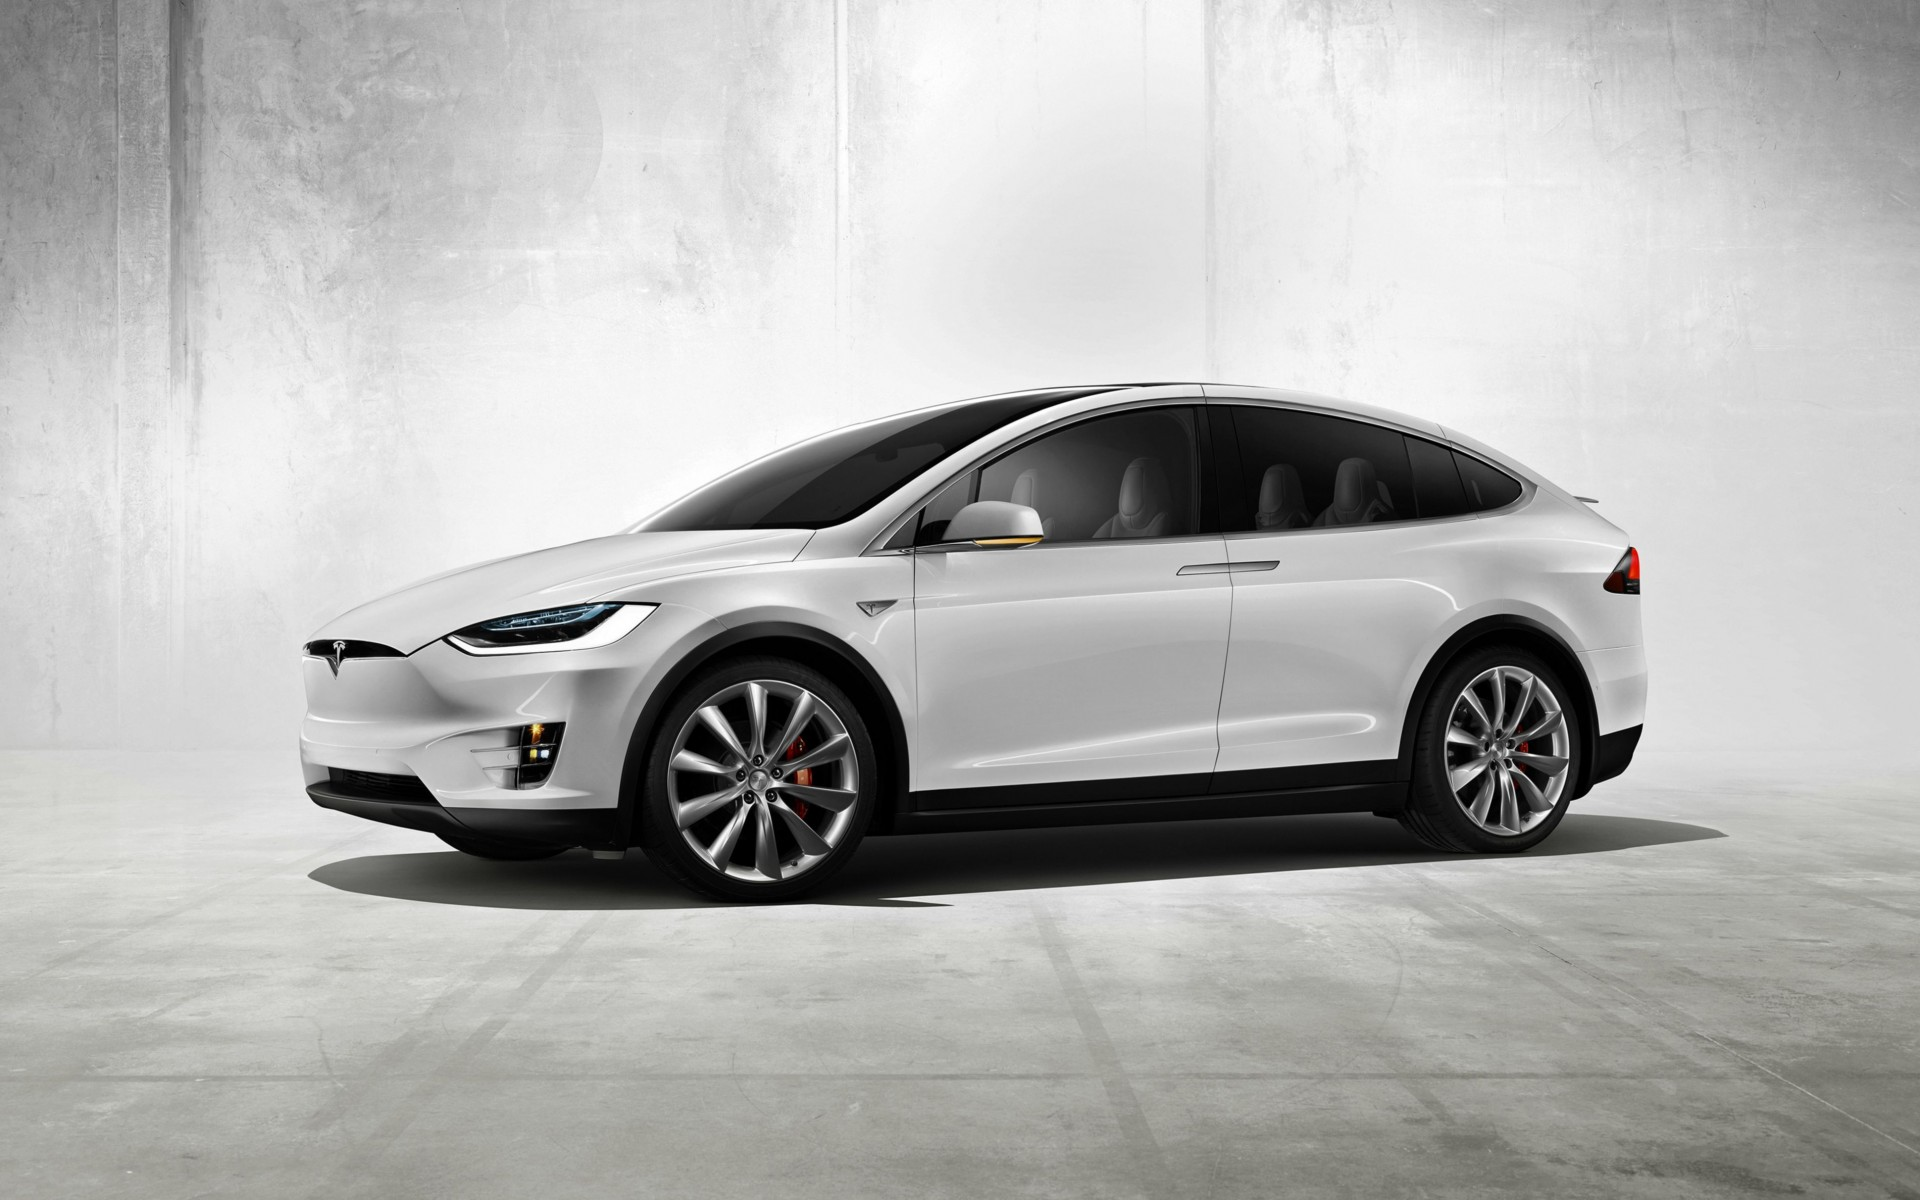 Best Concept Cars Wallpapers Tesla Model X Concept 2016 Hd Wallpaper Desktop Hd